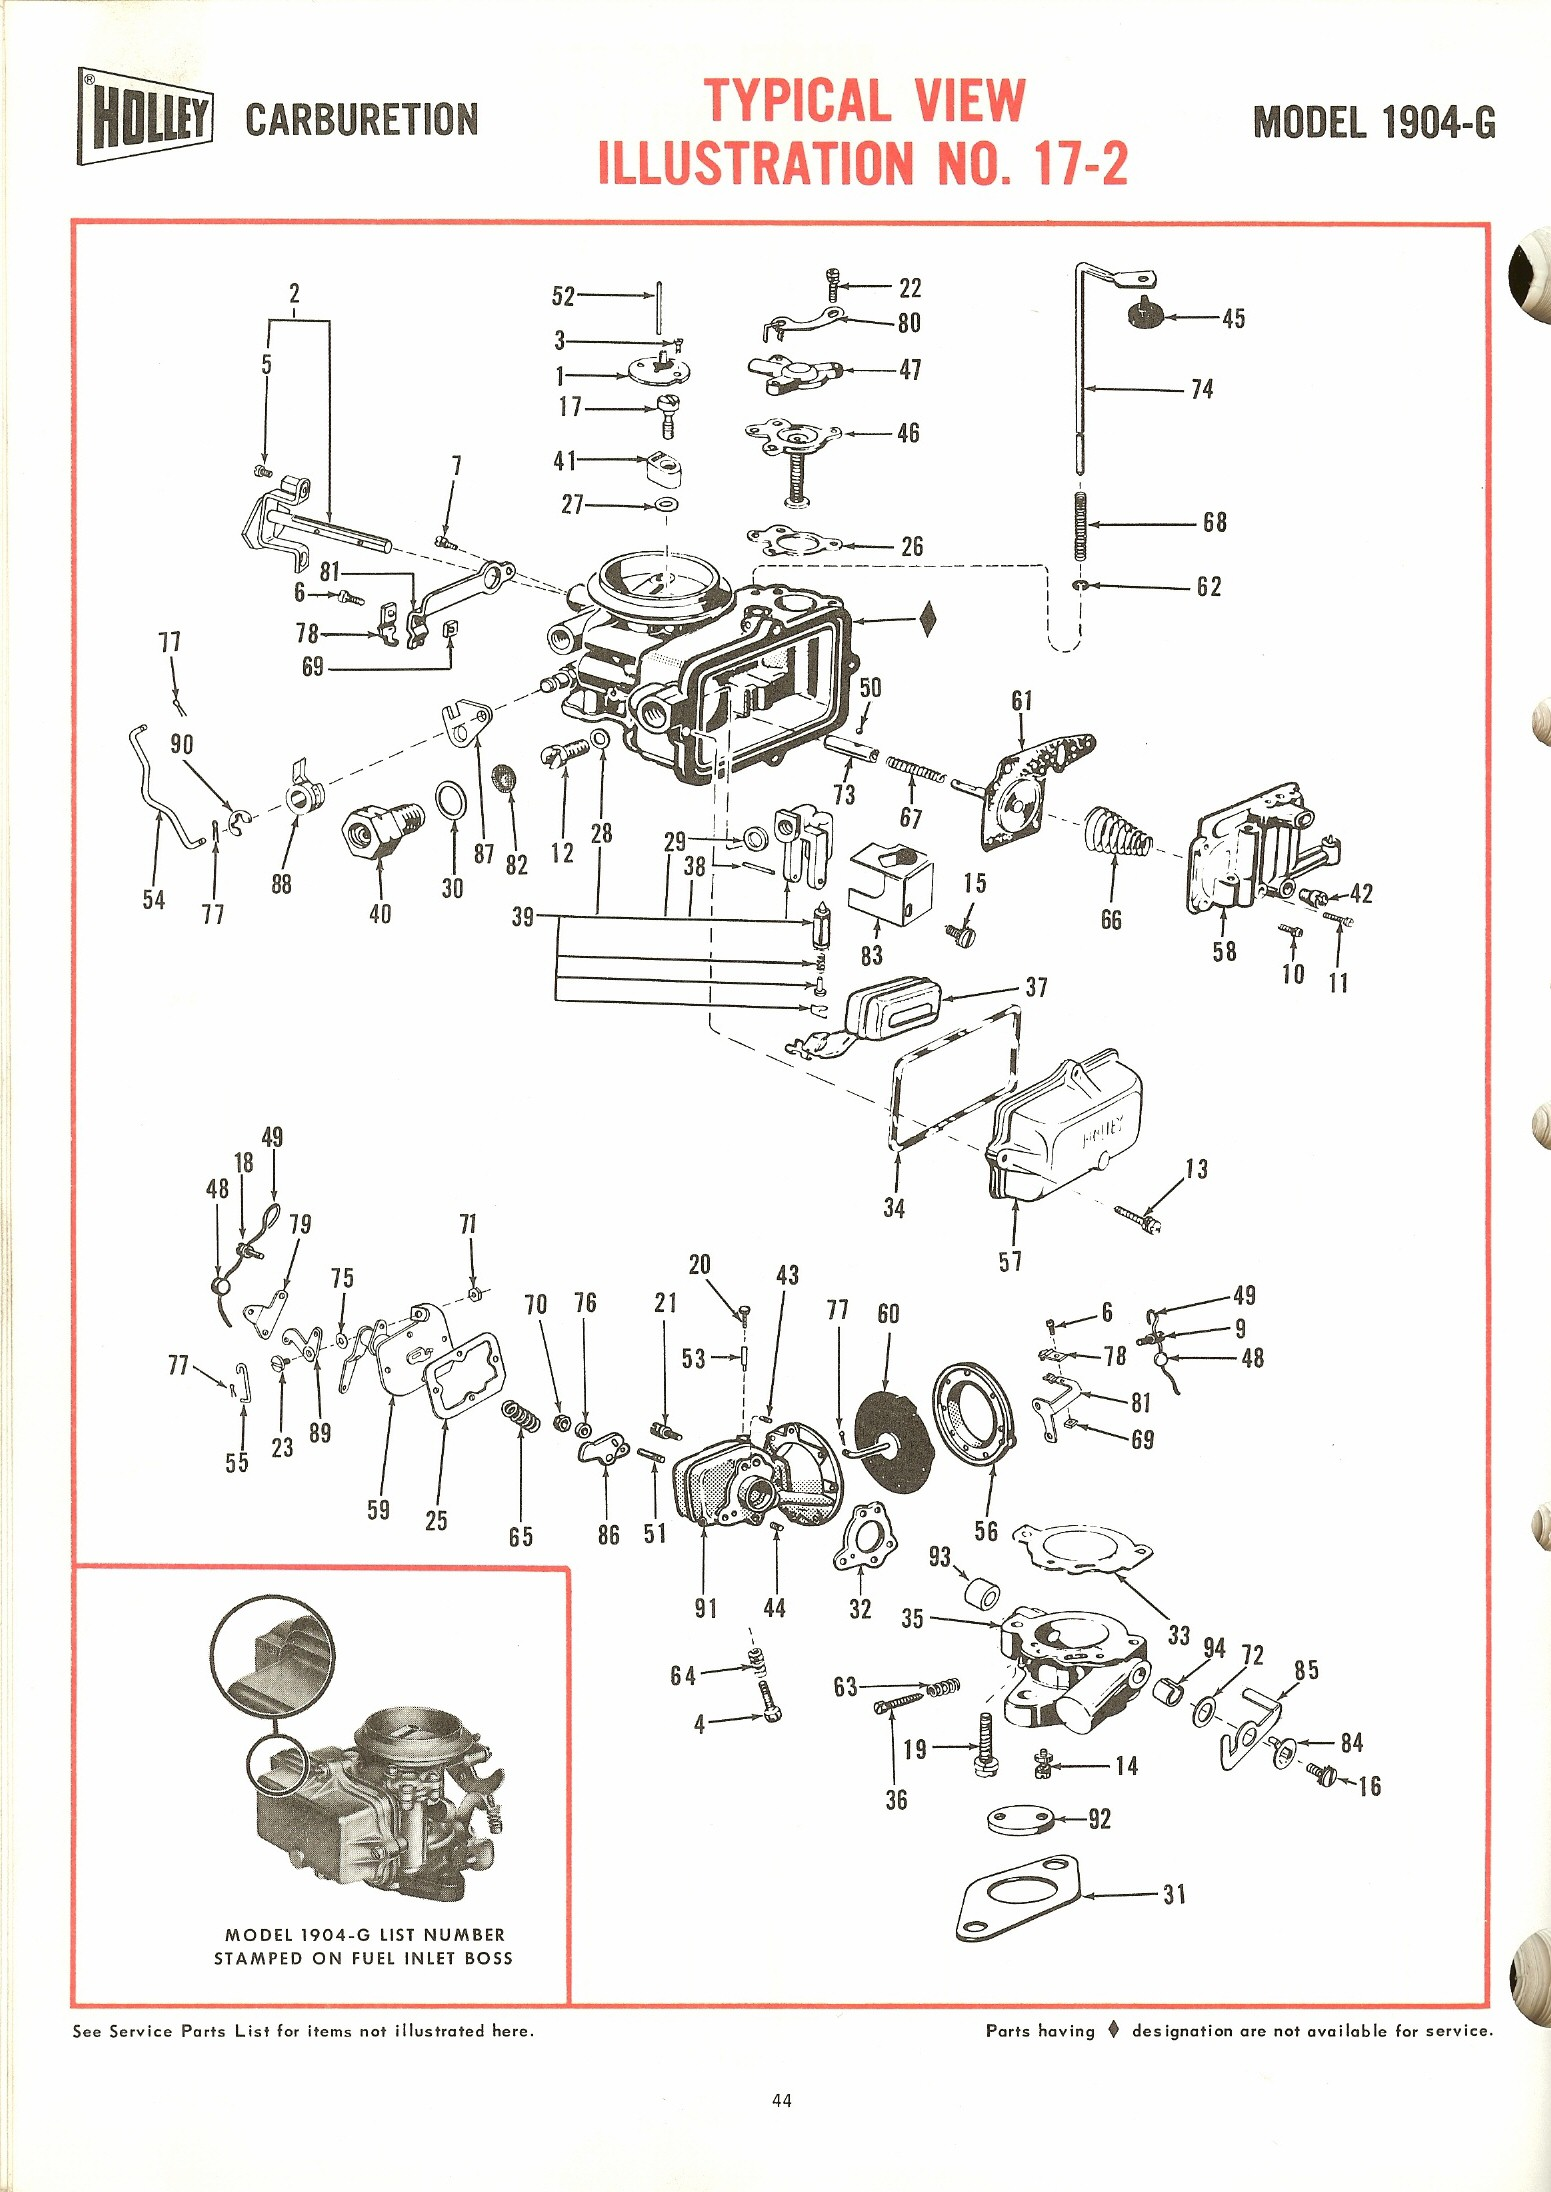 Holley 1904g Exploded Diagrams